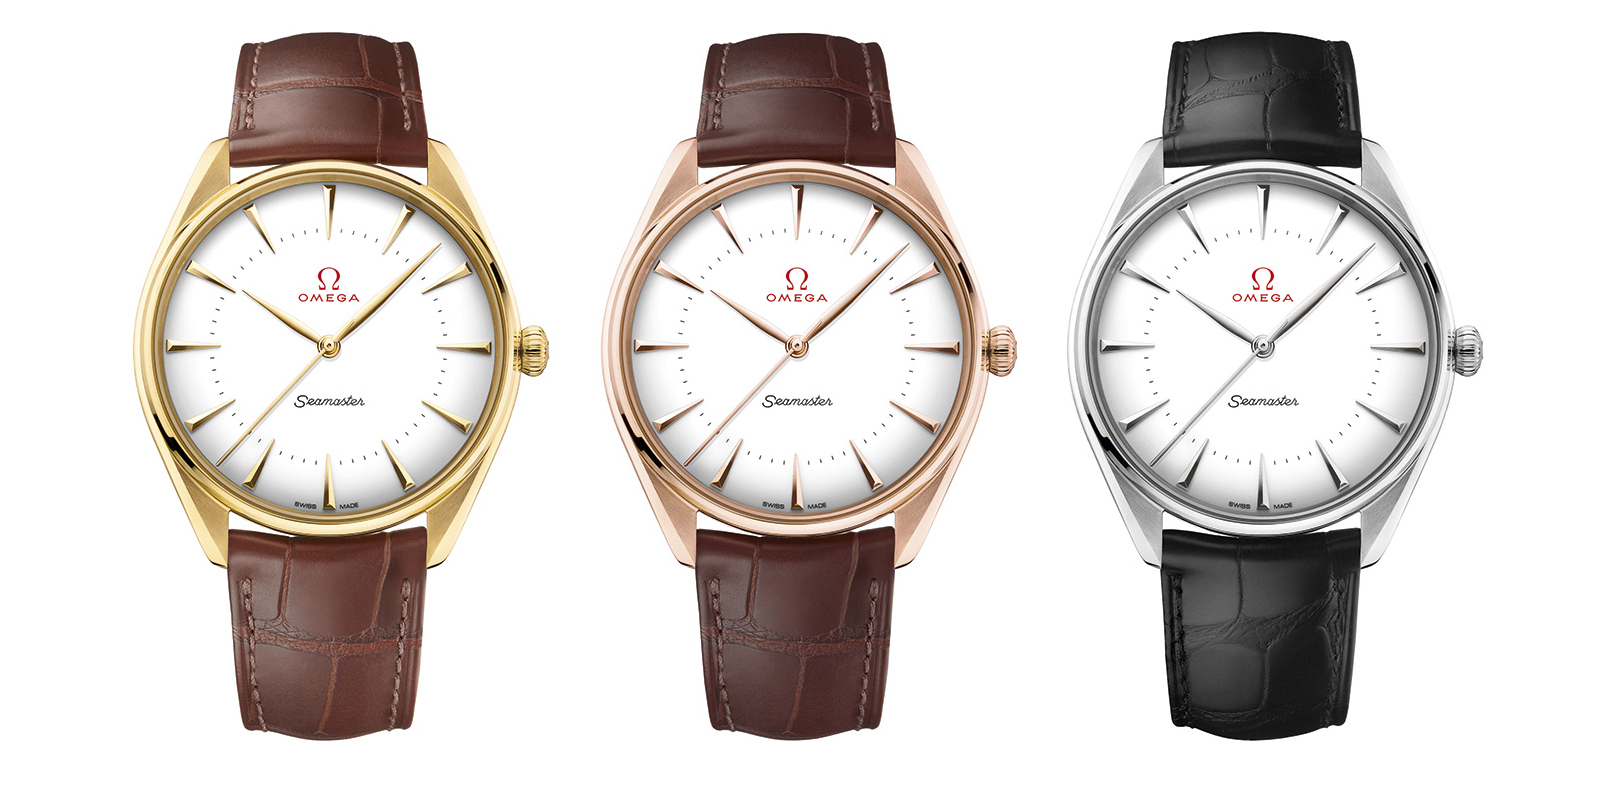 Omega Seamaster Olympic Games Gold Collection Three Models